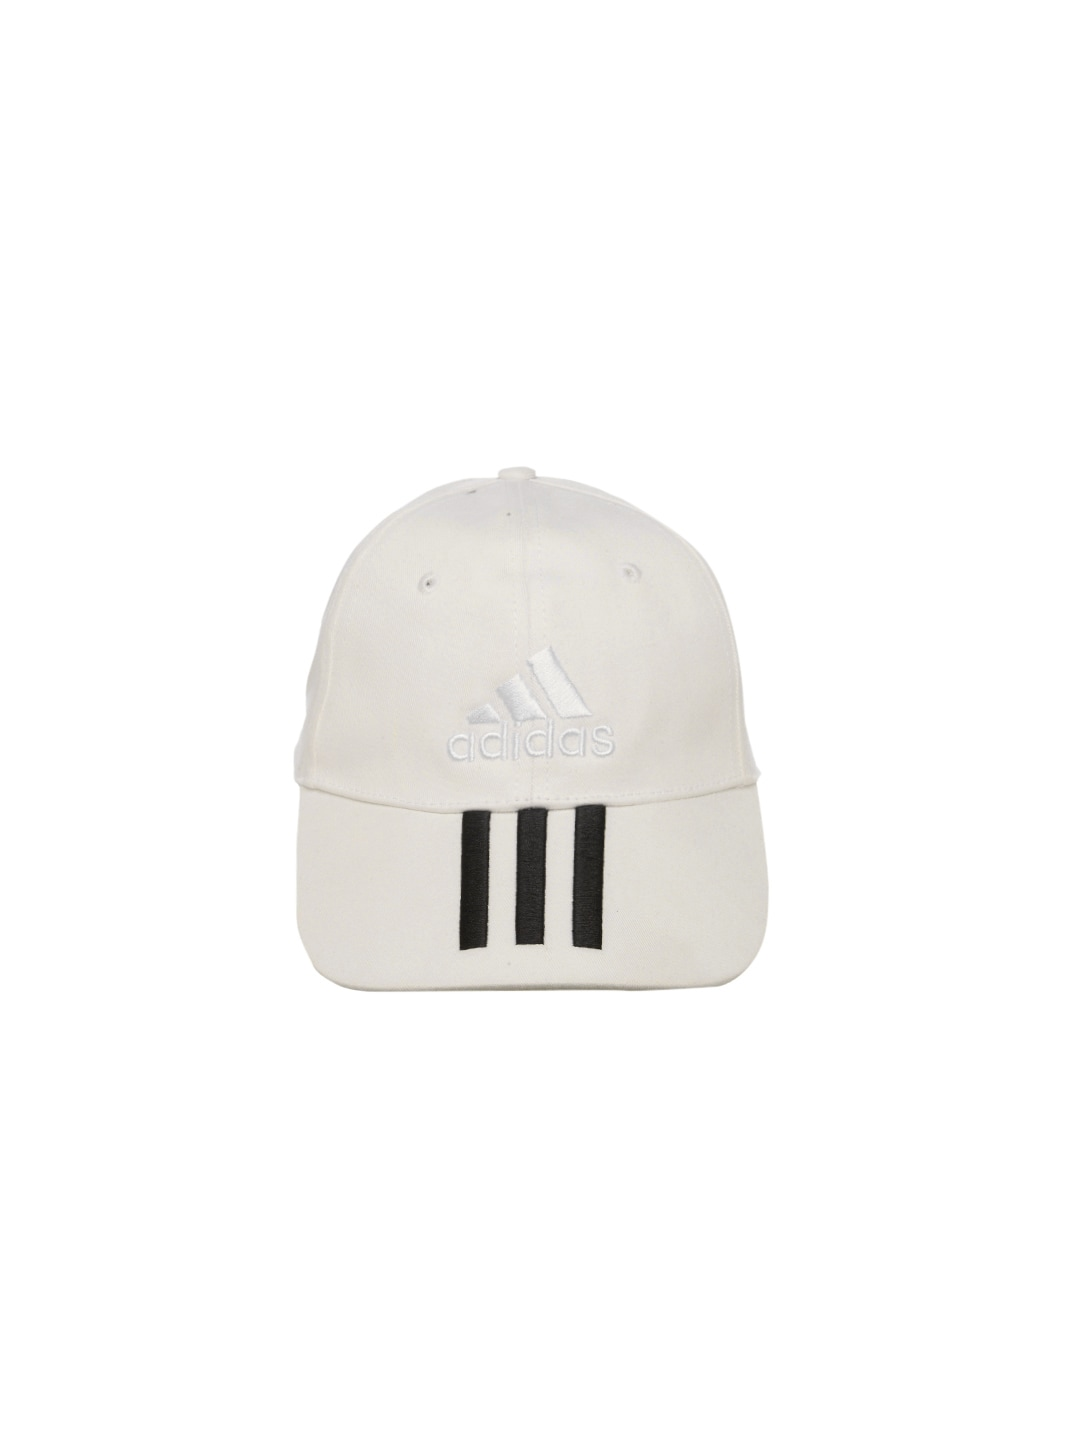 Adidas Stripes Caps - Buy Adidas Stripes Caps online in India d77fe4efeaf7